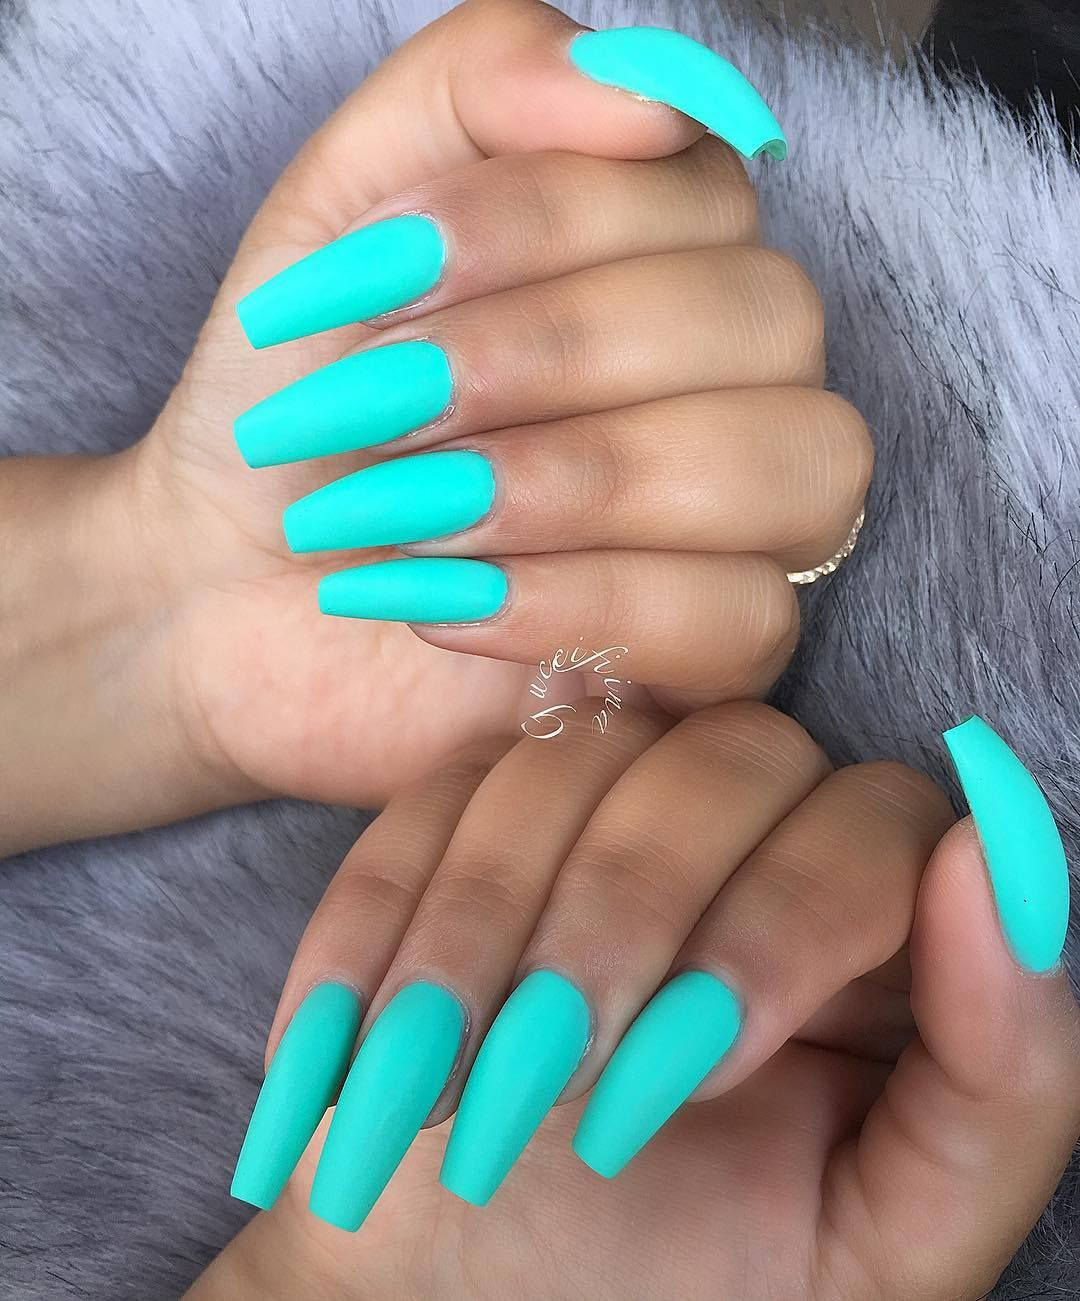 Pin By Alex Garside On Nails In 2020 With Images Teal Acrylic Nails Turquoise Nails Blue Acrylic Nails